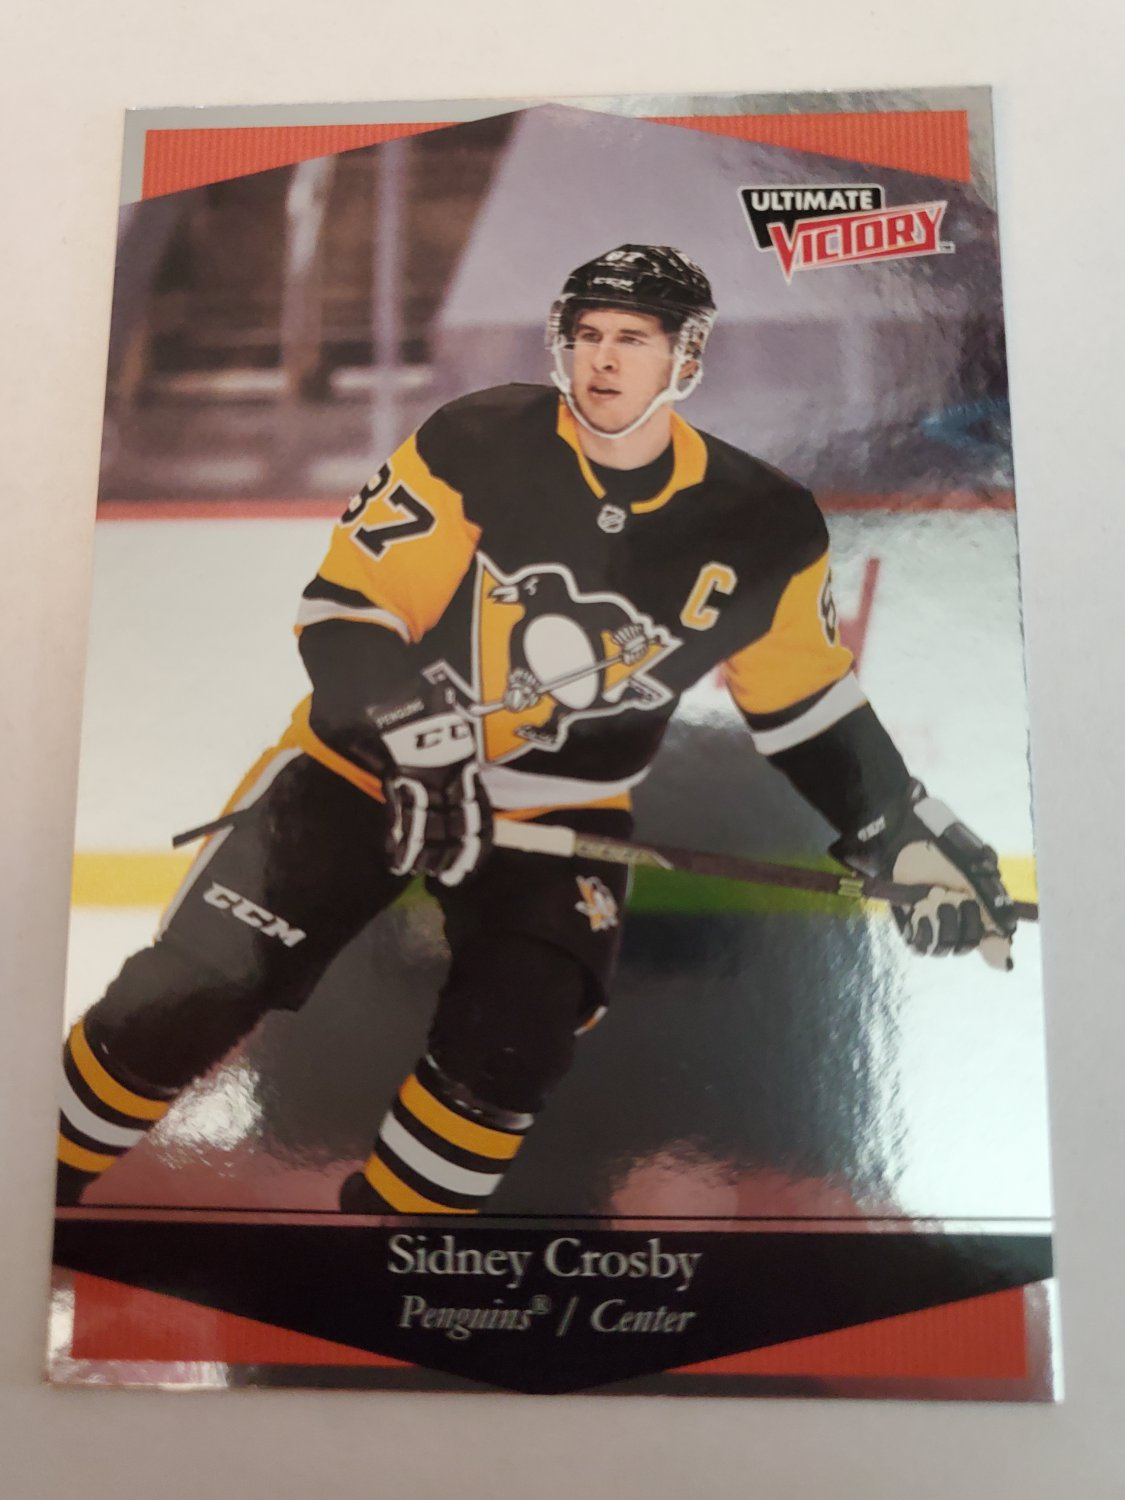 Sidney Crosby 2020-21 Upper Deck Ultimate Victory Insert Card